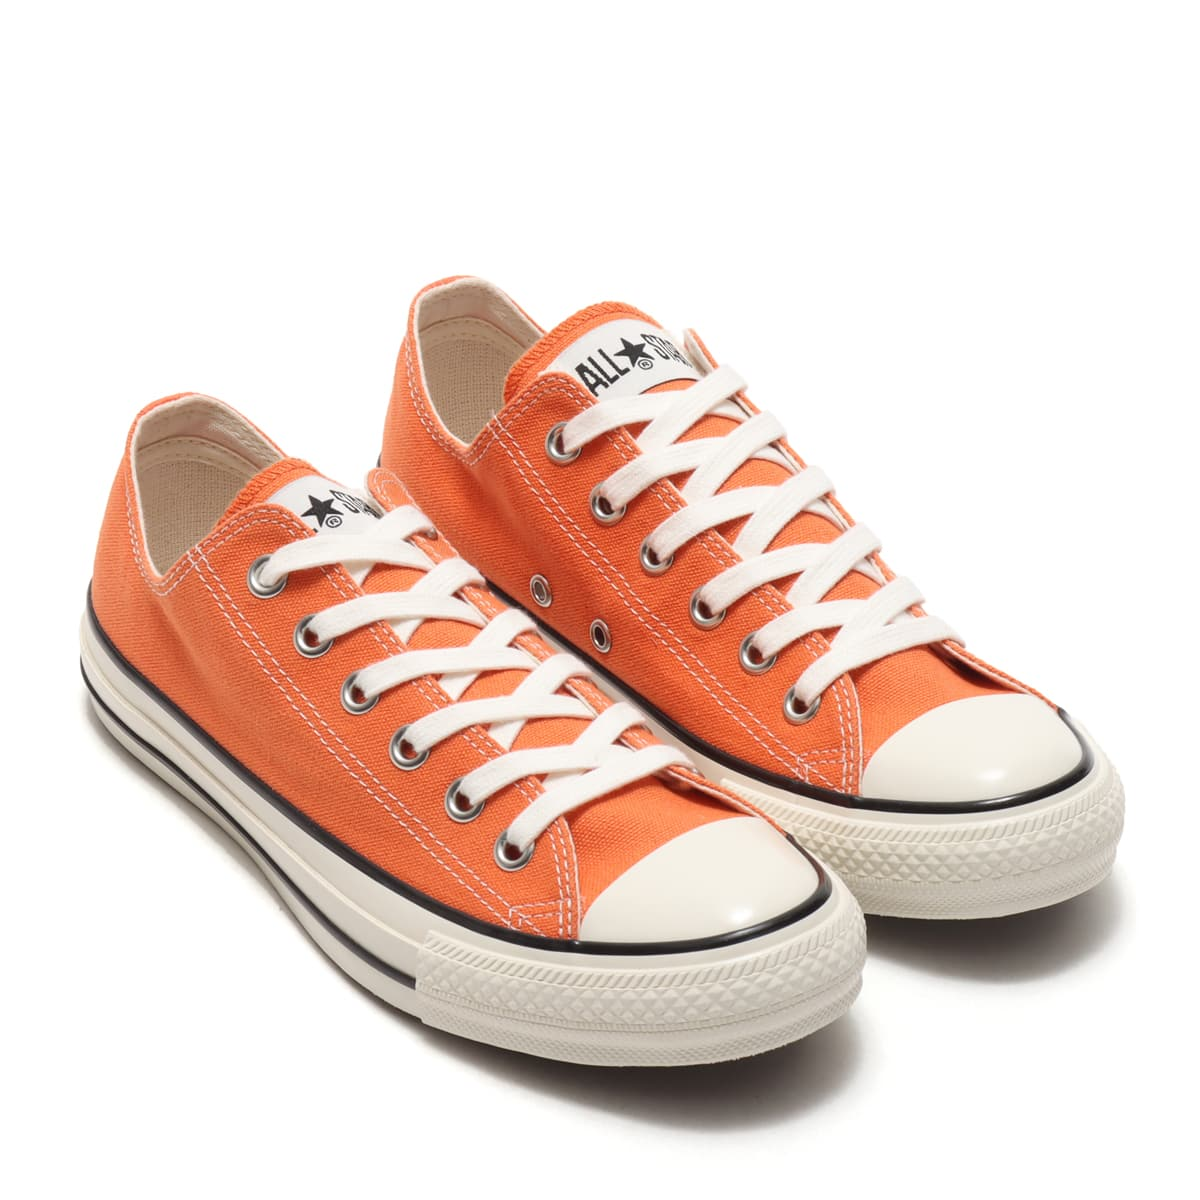 CONVERSE ALL STAR US COLORS OX ORANGE 21SS-I_photo_large